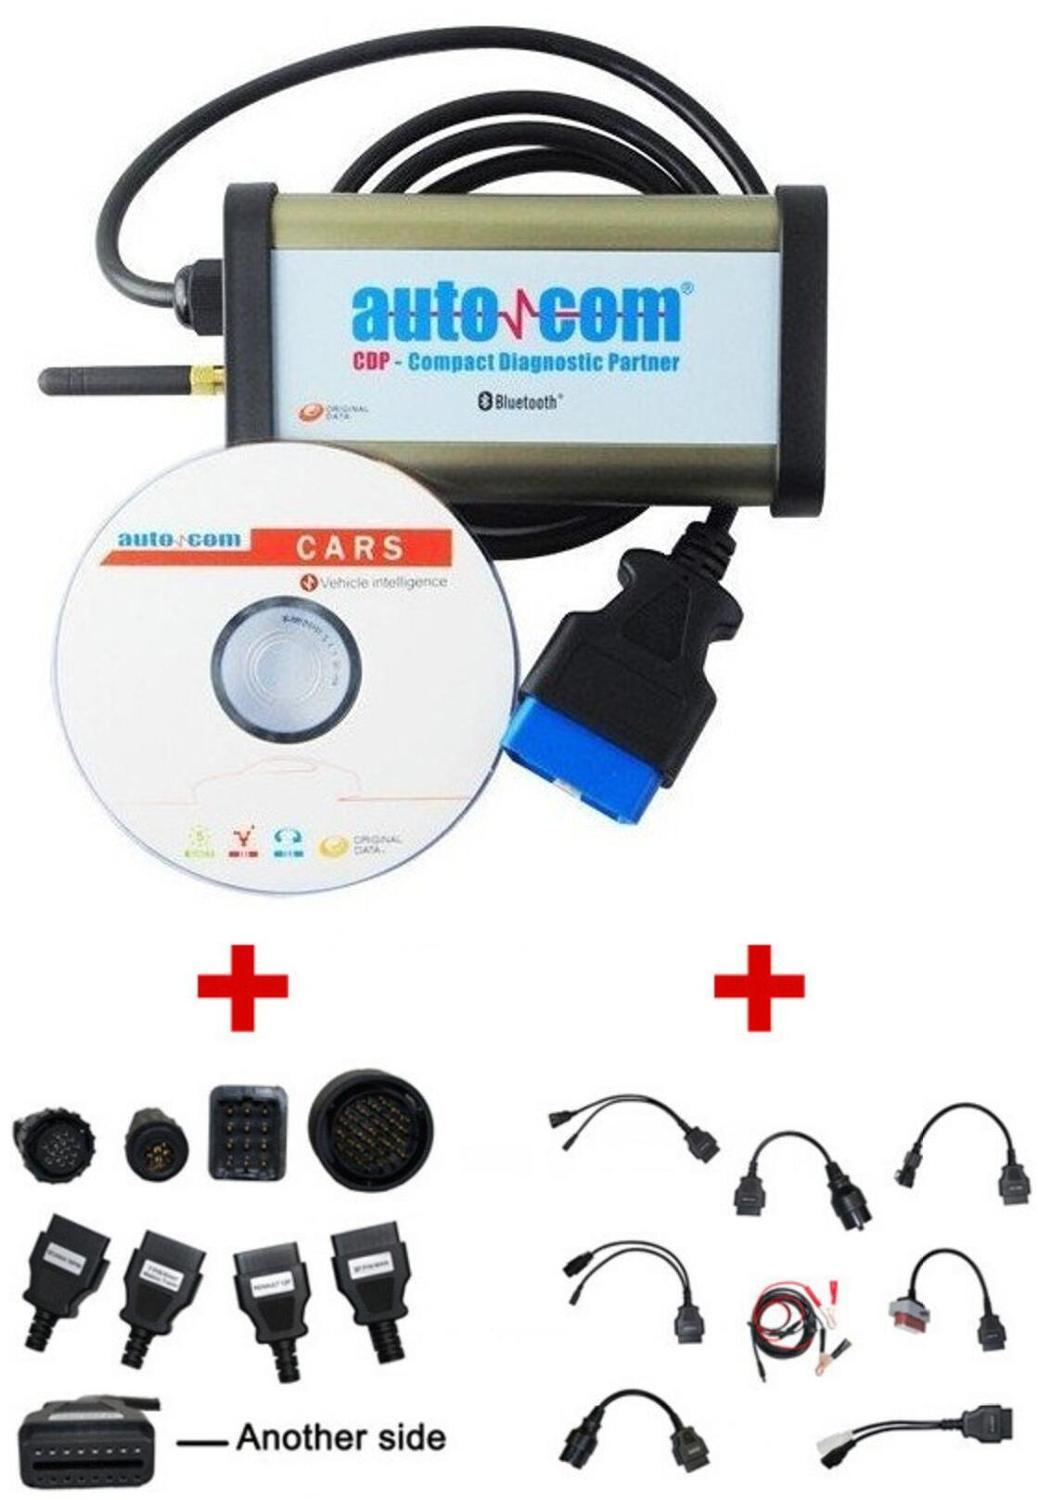 2020 Newest For Autocom CDP Pro for Delphi DS150E New Vci Diagnostic Tool Plus OBD2+bluetooth+ full set car and truck cables